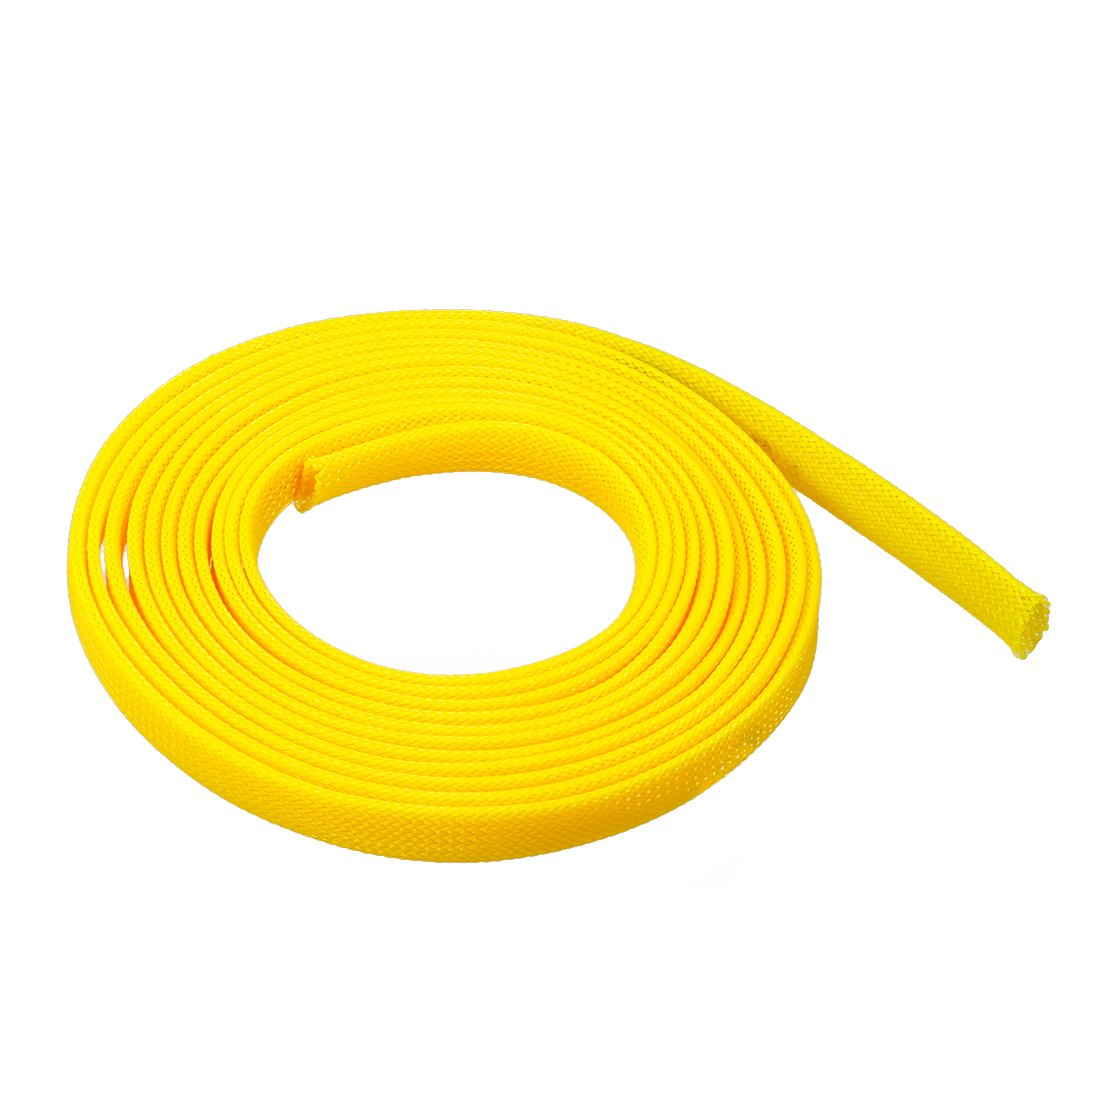 sourcing map 9.84ft 3 Meters PET Expandable Braided Sleeving 6mm Cable Management Sleeve Cord Organizer for Wrap Protect Cables Yellow